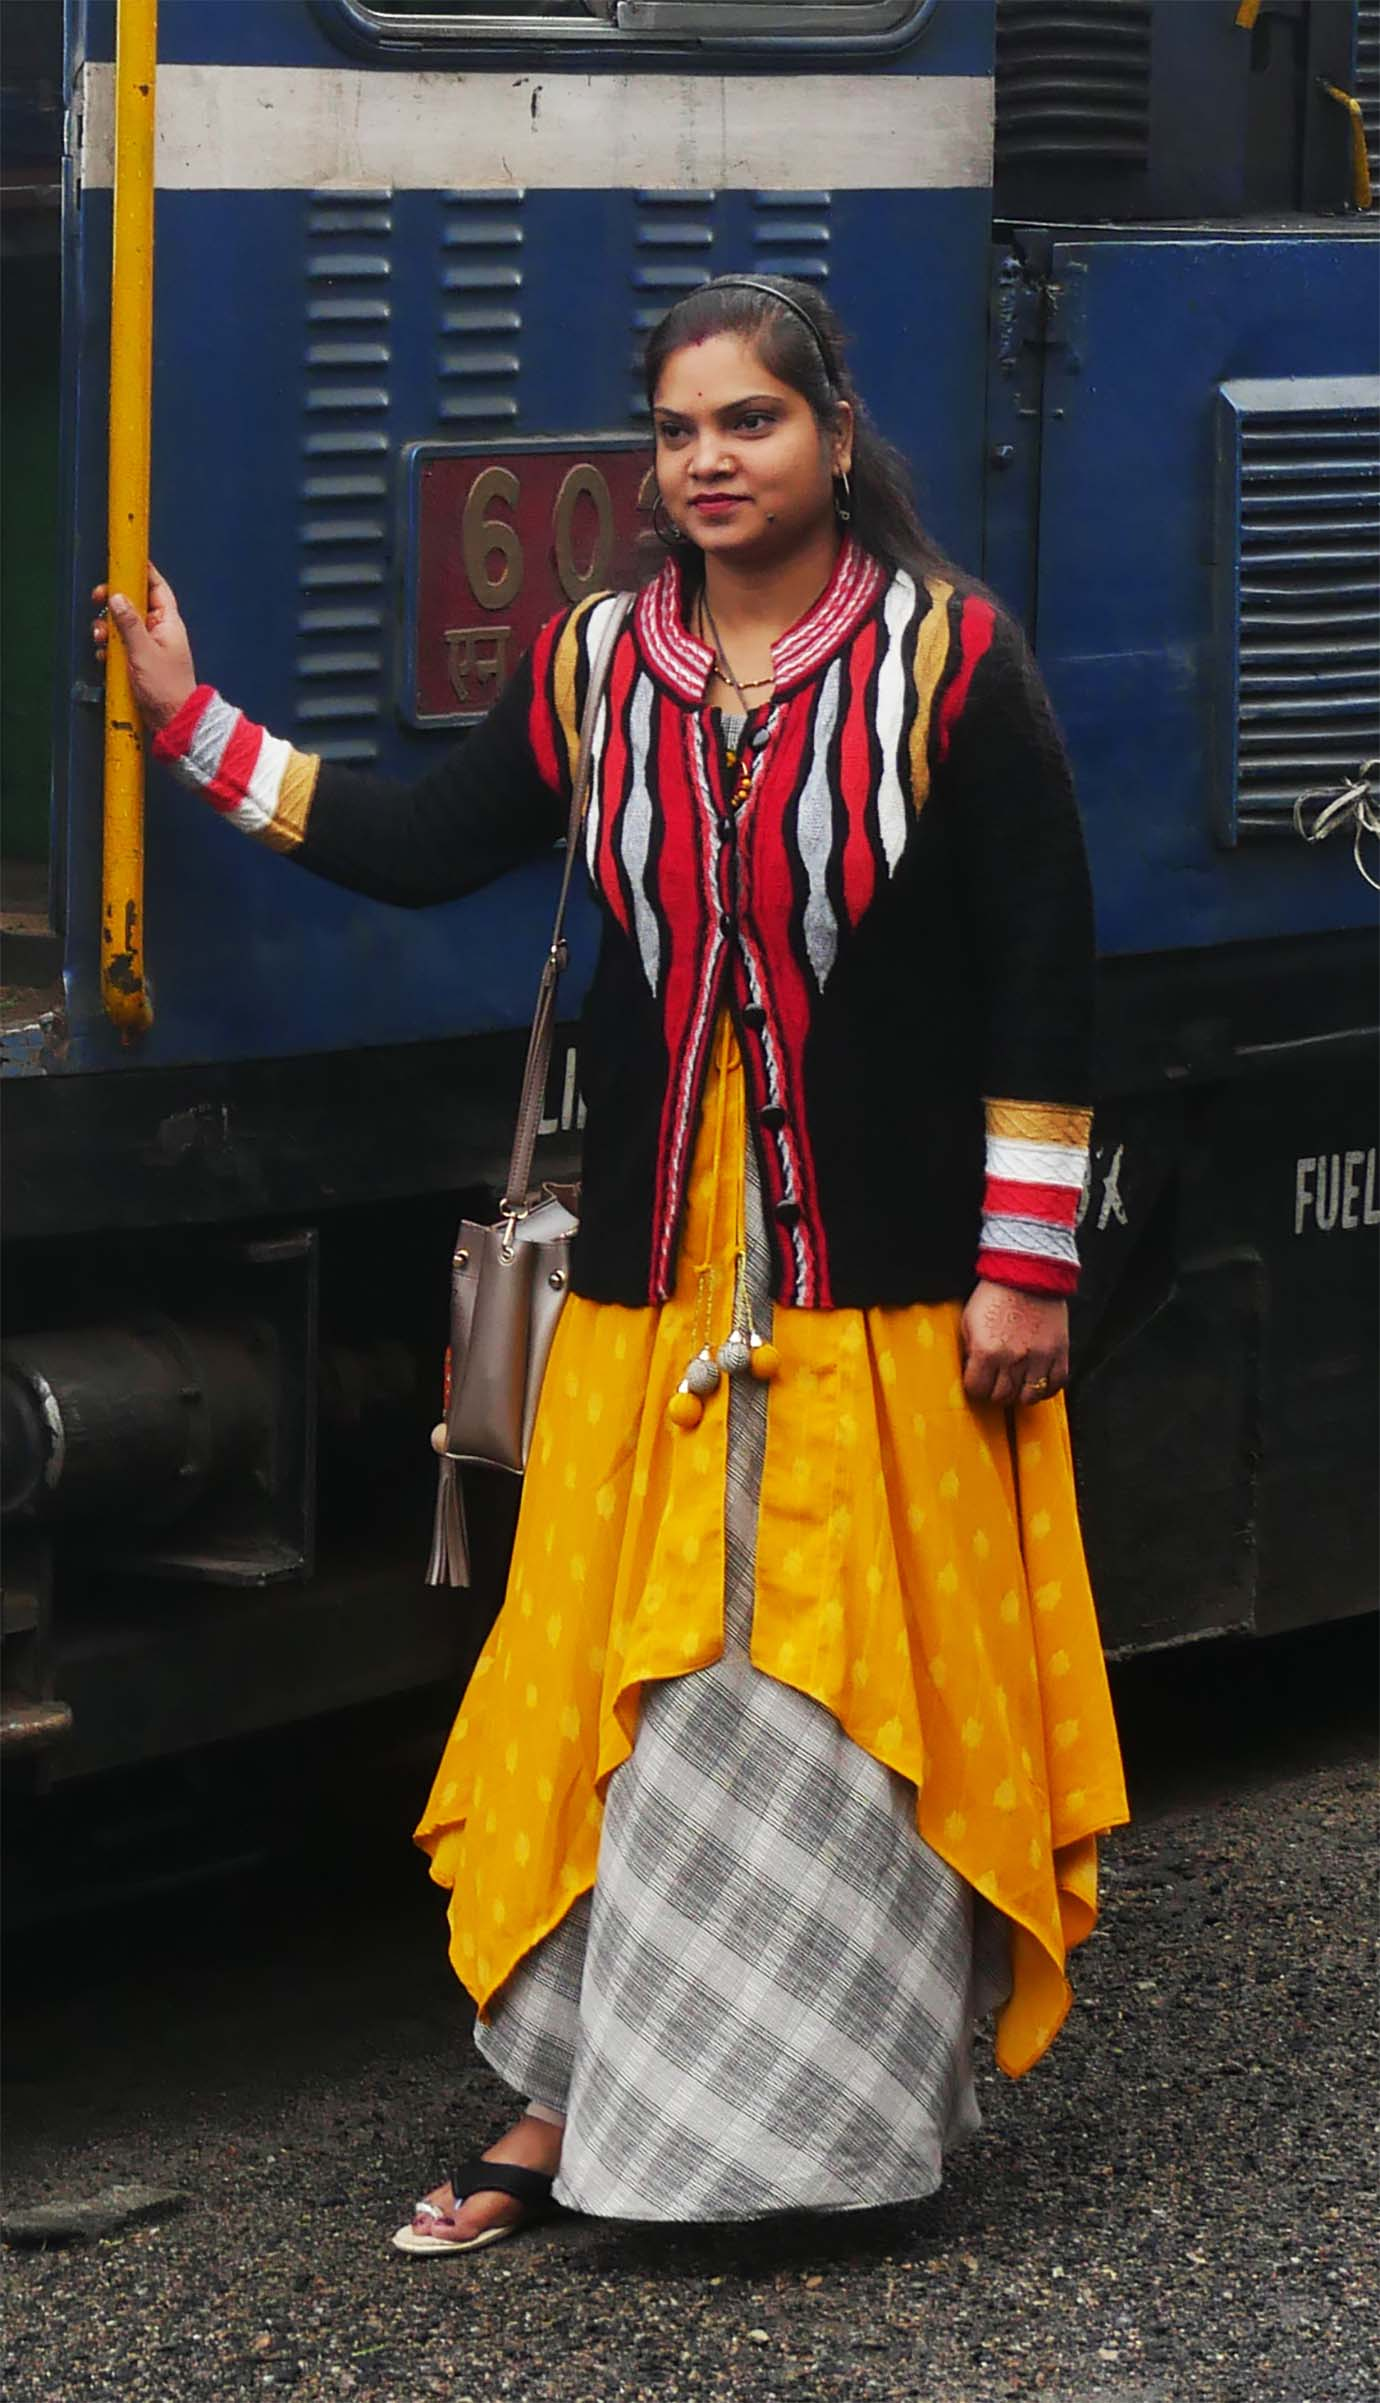 ride-darjeeling-railway-india27